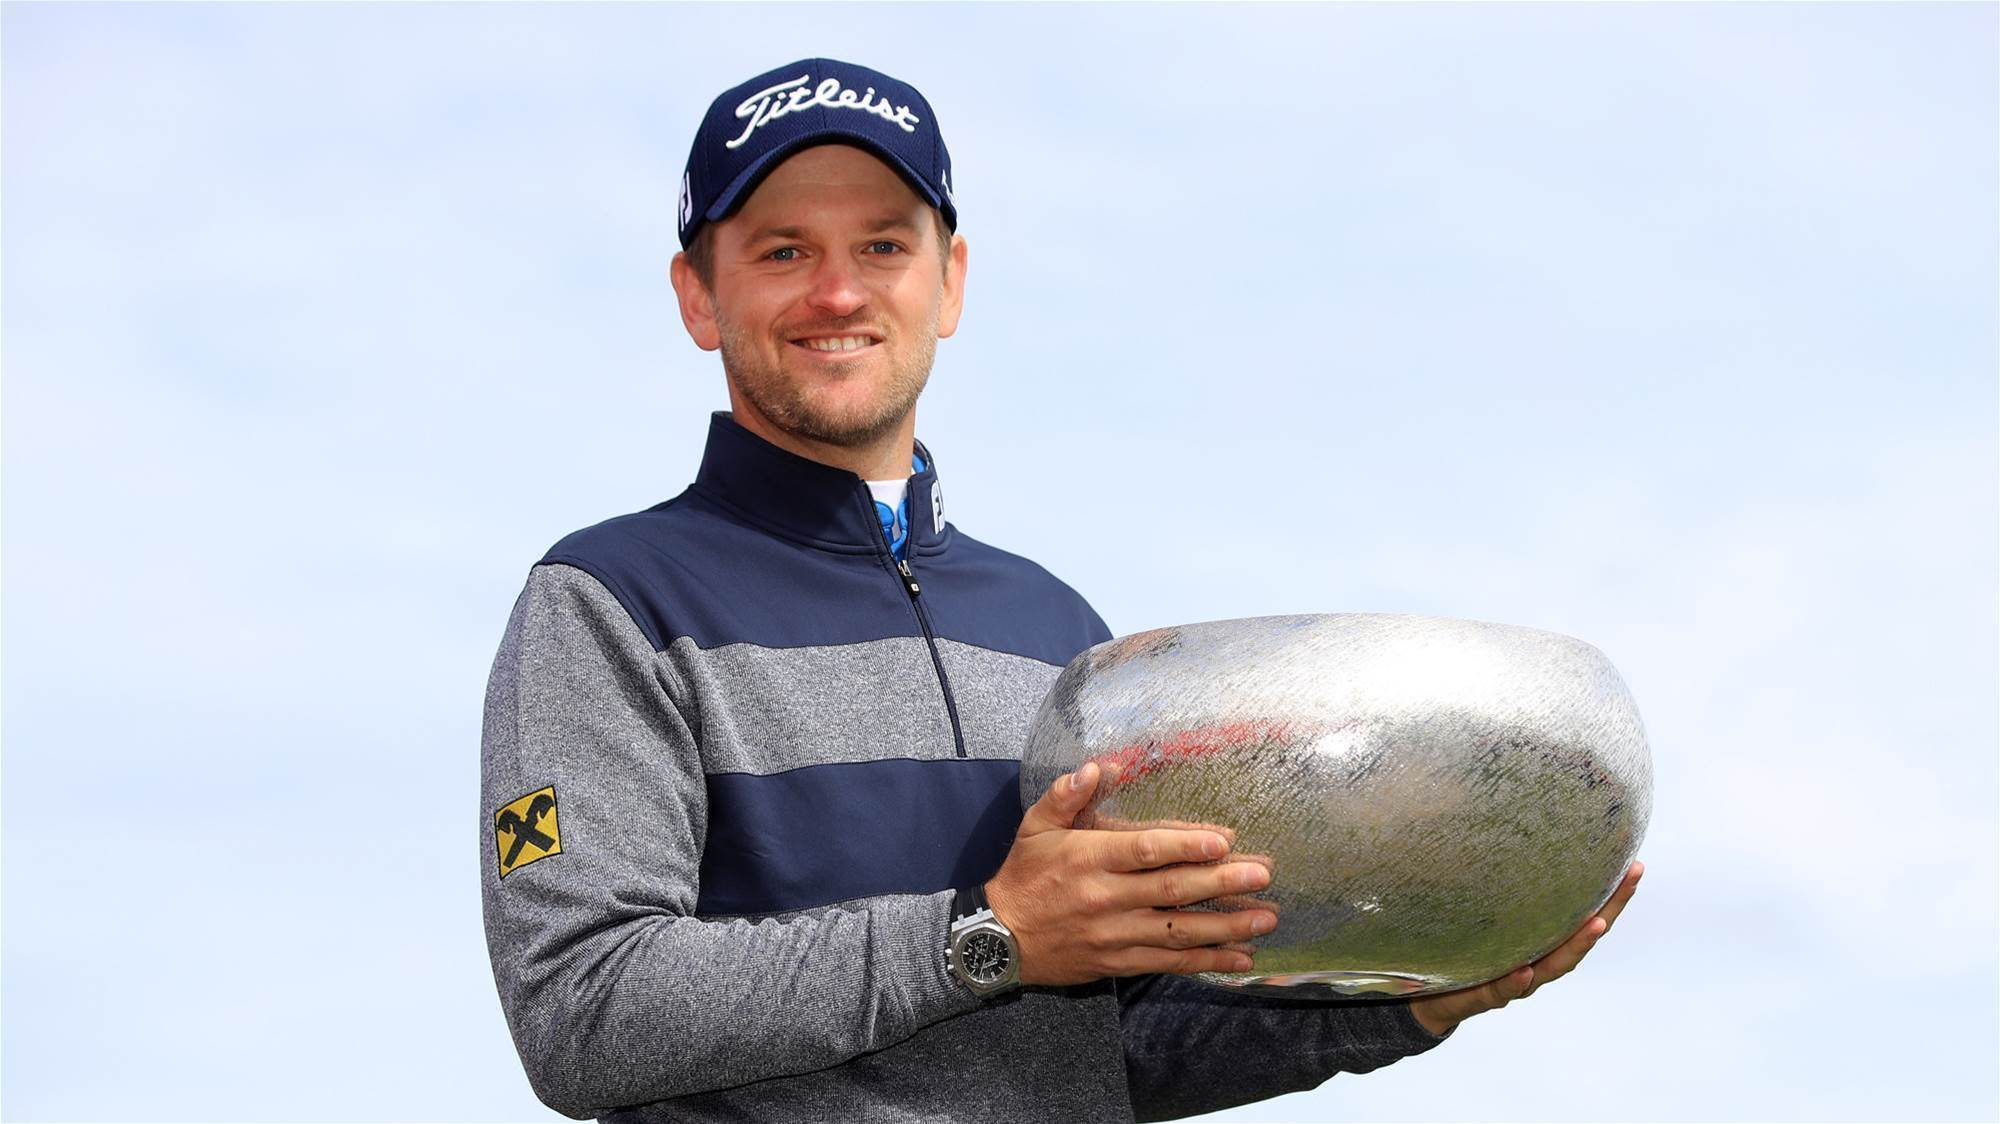 Wiesberger wins Made in Denmark